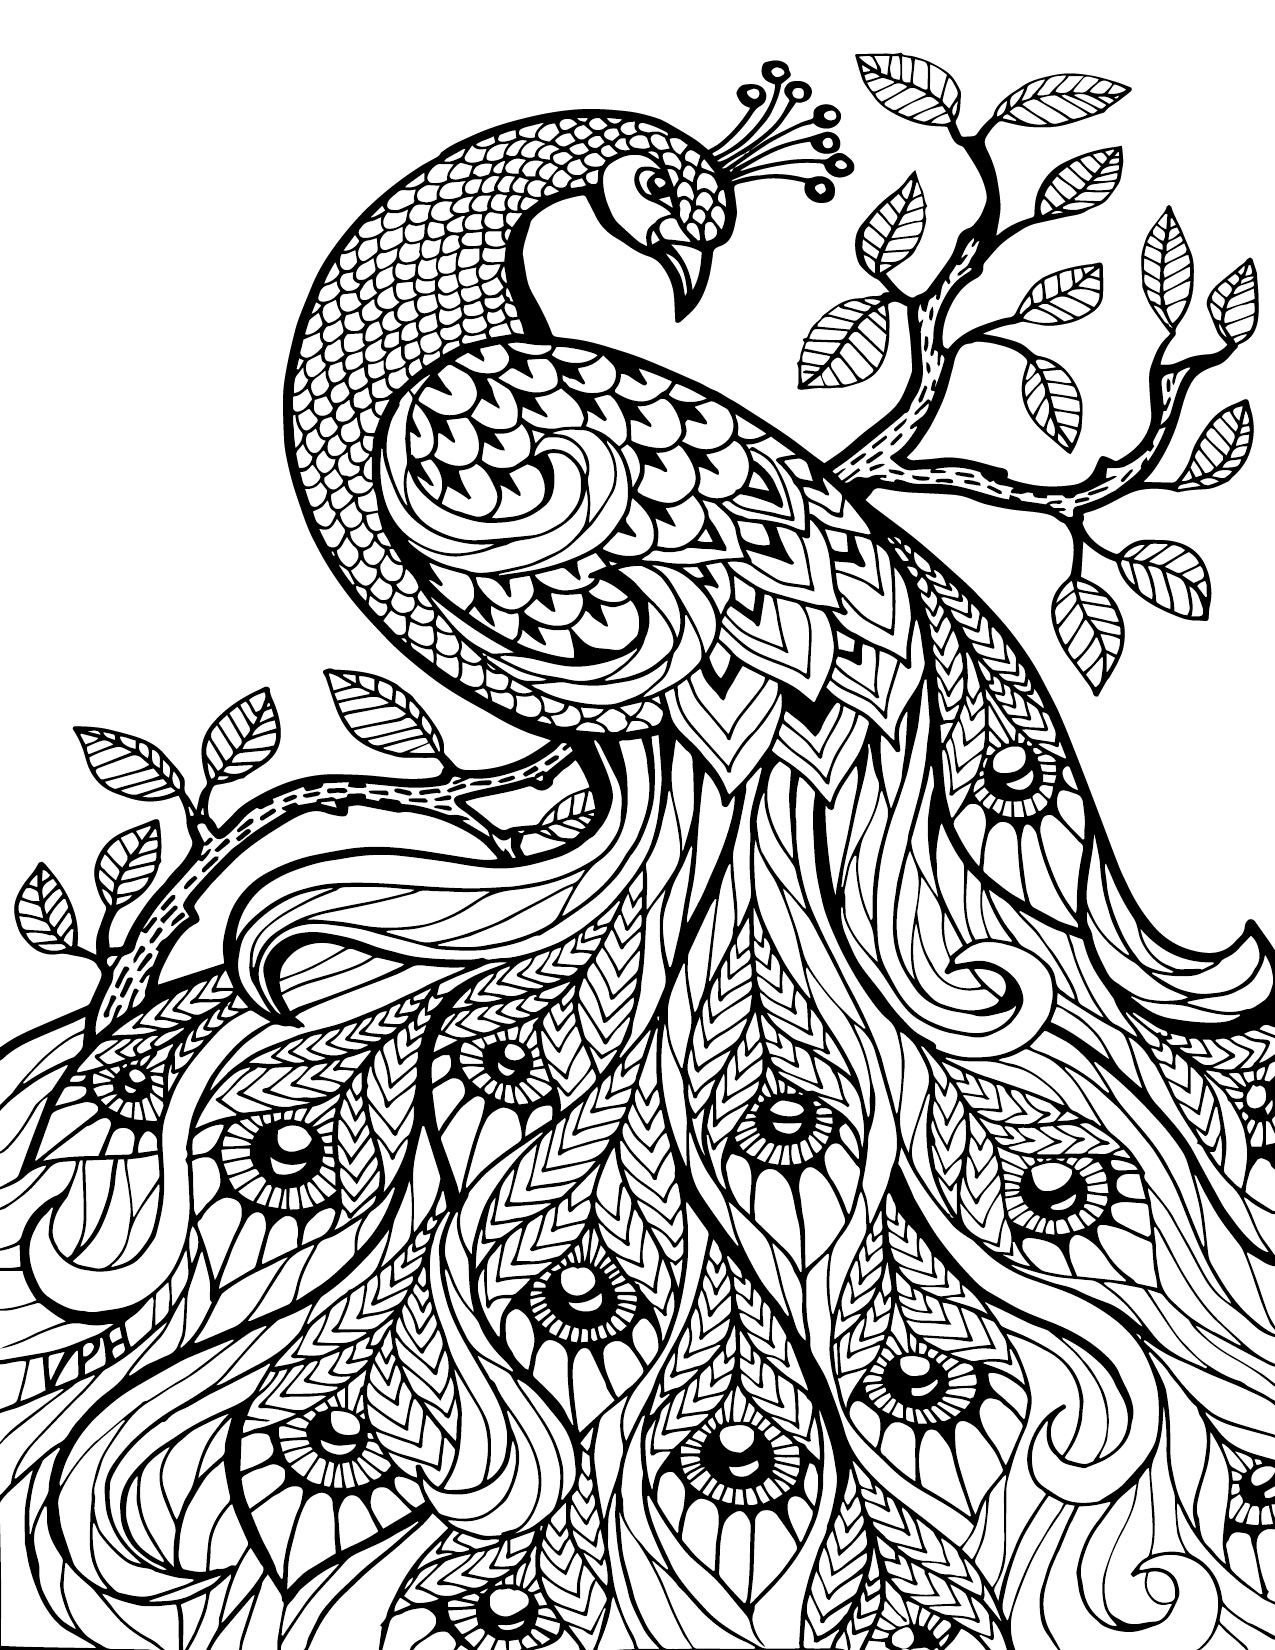 free coloring pages downloads - photo#4